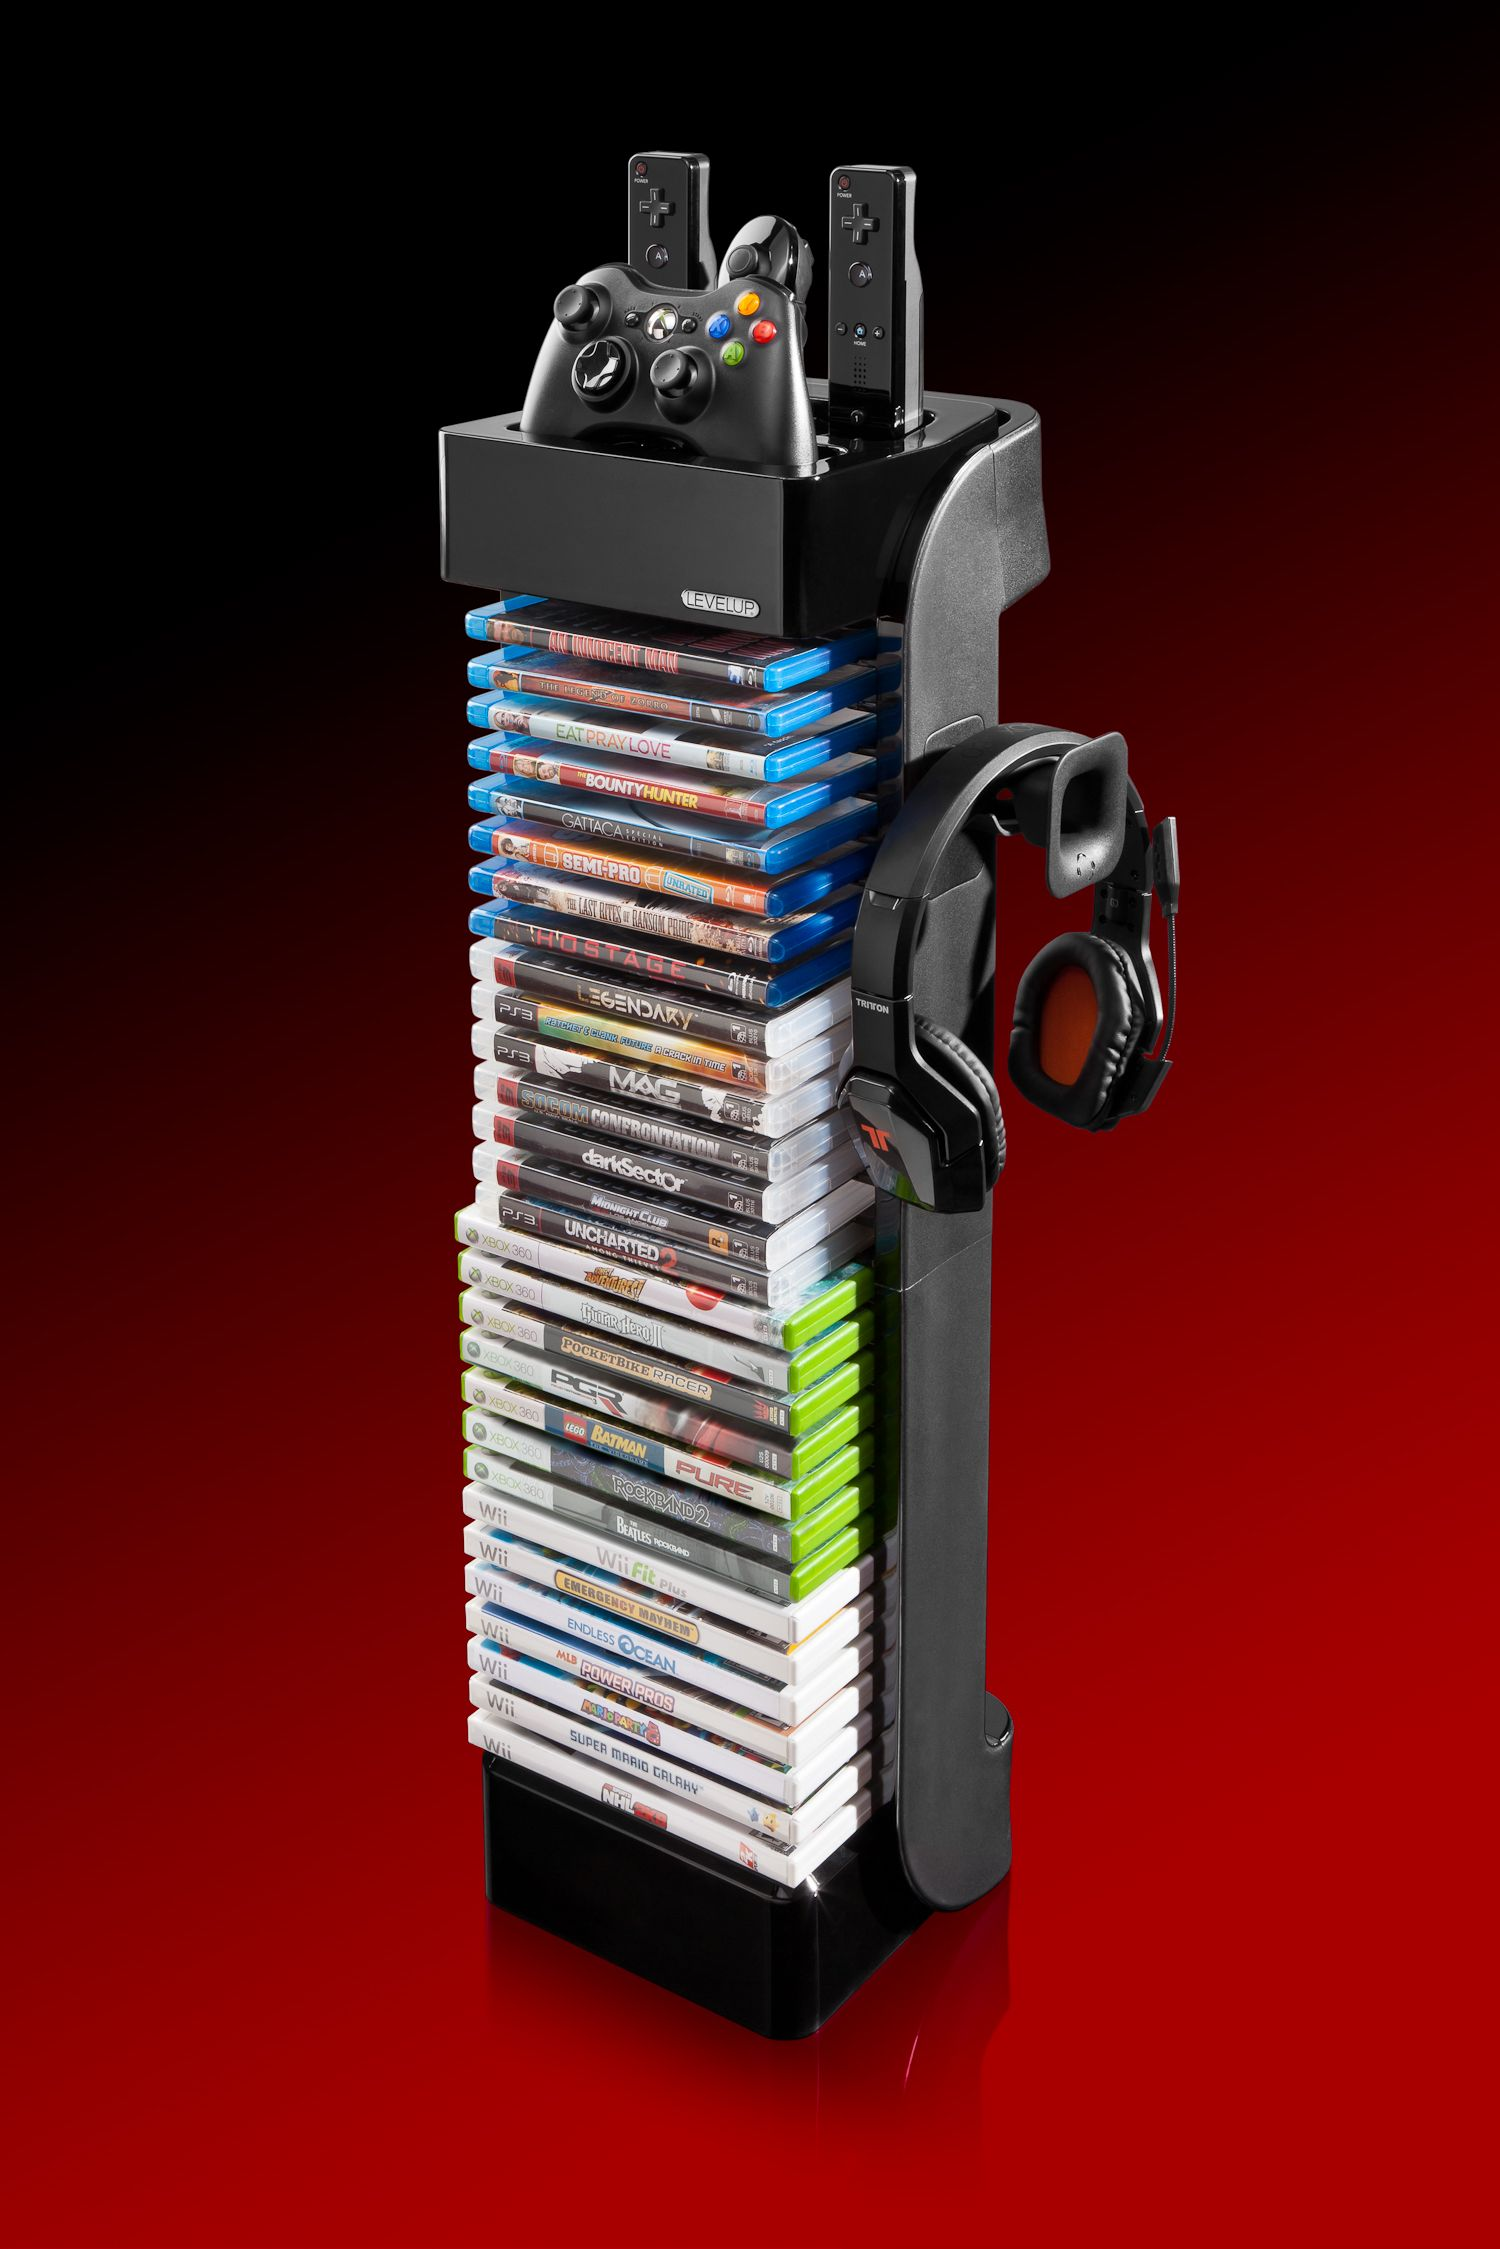 Rt Controller Storage Tower Design Function And Value Holds 28 Games Dvd And Blu Ray Discs Holds Video Game Rooms Game Storage Game Room Design